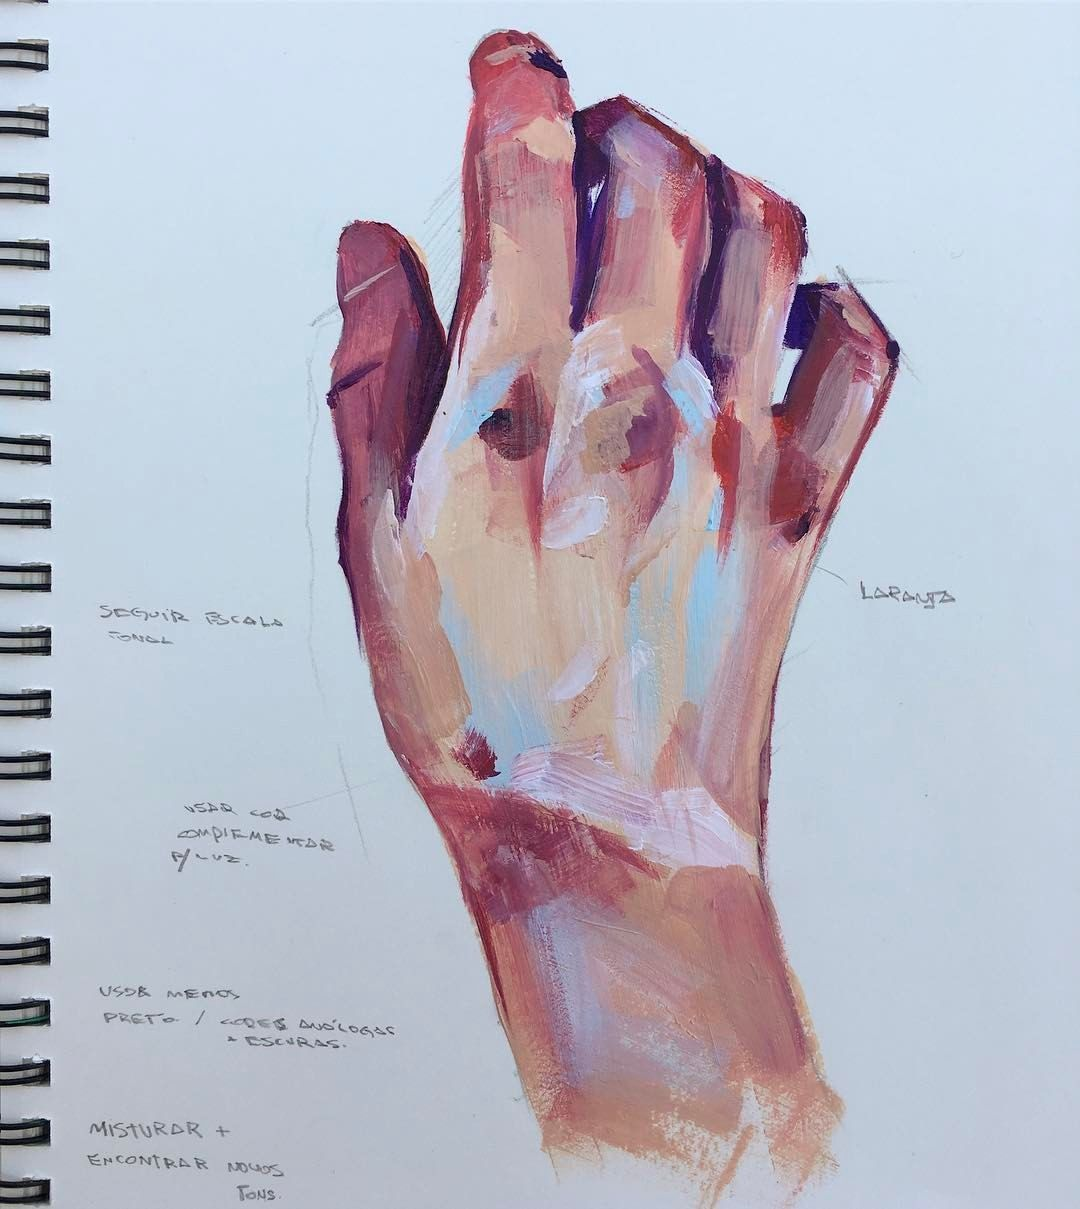 """Lucas Paulucci on Instagram: """"Simplification study with acrylic paint lucaspaulucci lucaspaulucciart sketchbook study sketch hand painting acrilica… ...#acrilica #acrylic #hand #instagram #lucas #lucaspaulucci #lucaspaulucciart #paint #painting #paulucci #simplification #sketch #sketchbook #study"""